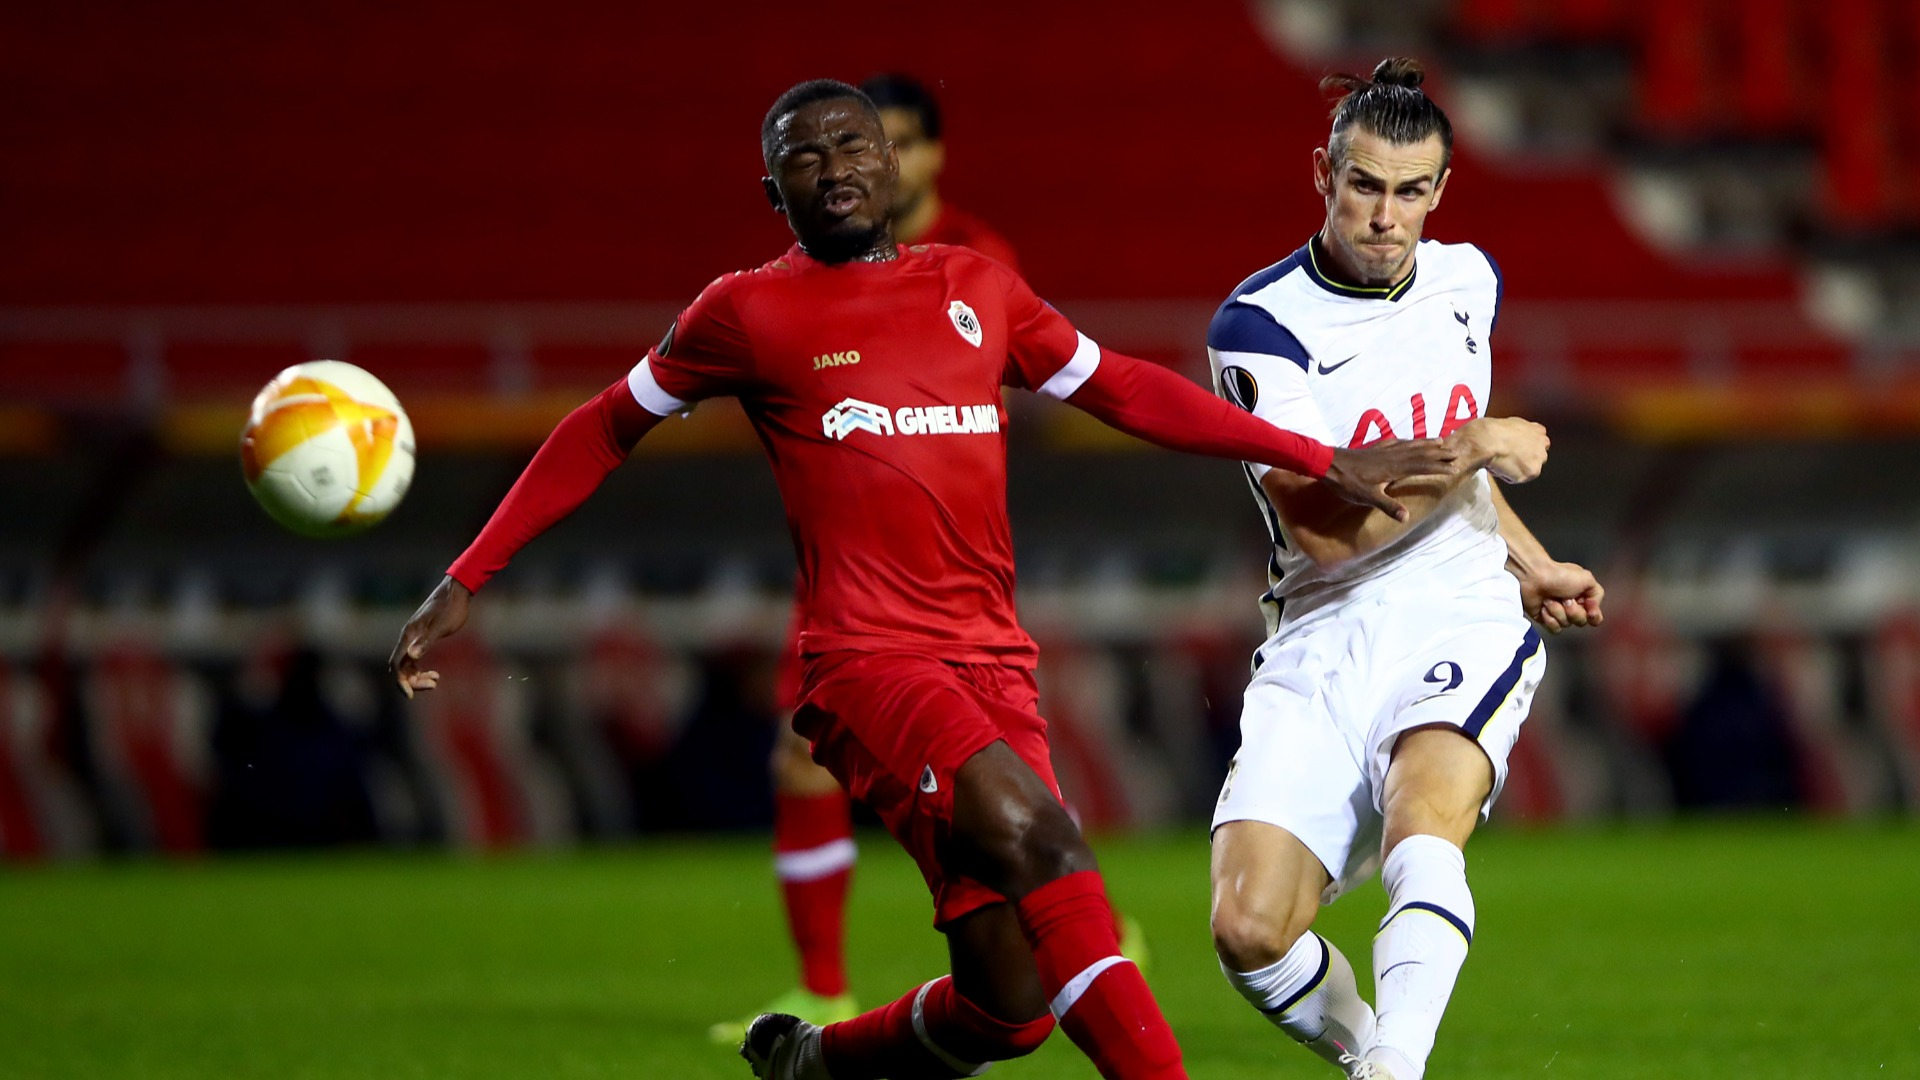 Royal Antwerp 1-0 Tottenham: Alli and Bale hooked as sloppy Spurs suffer setback